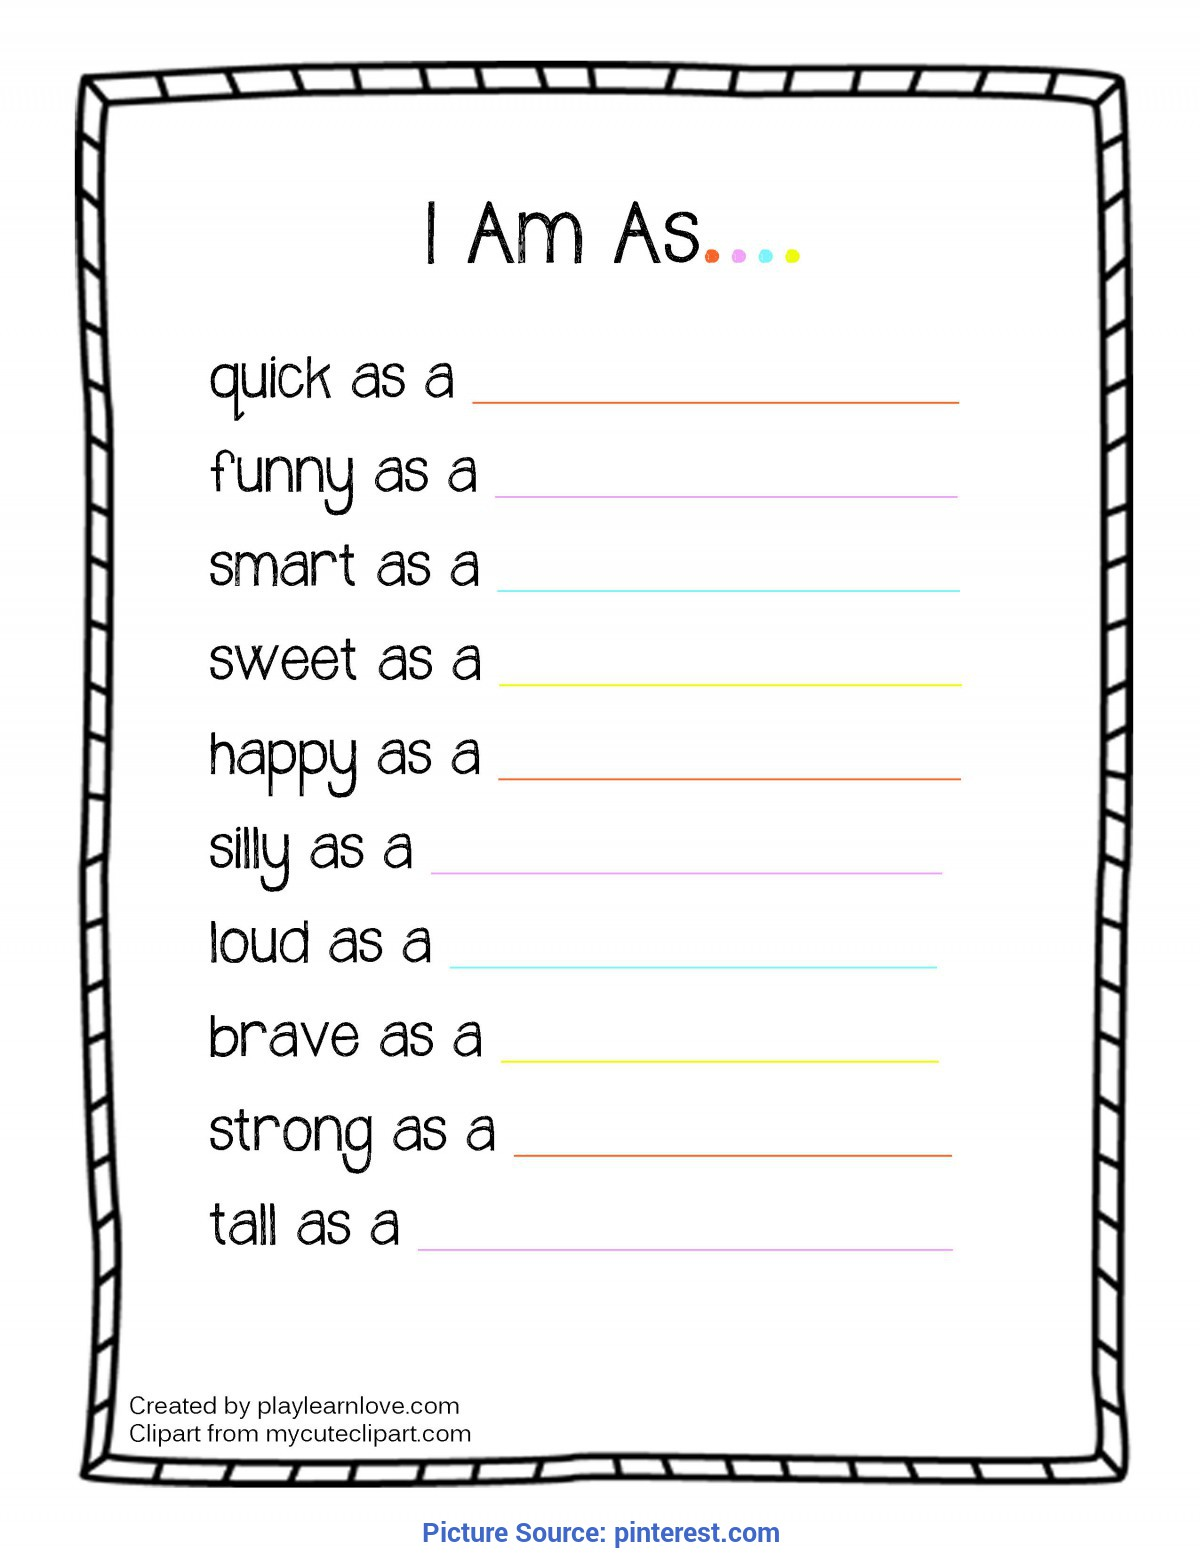 photo regarding All About Me Free Printable referred to as Informative Totally free Printable Little one Curriculum All With regards to Me I Am